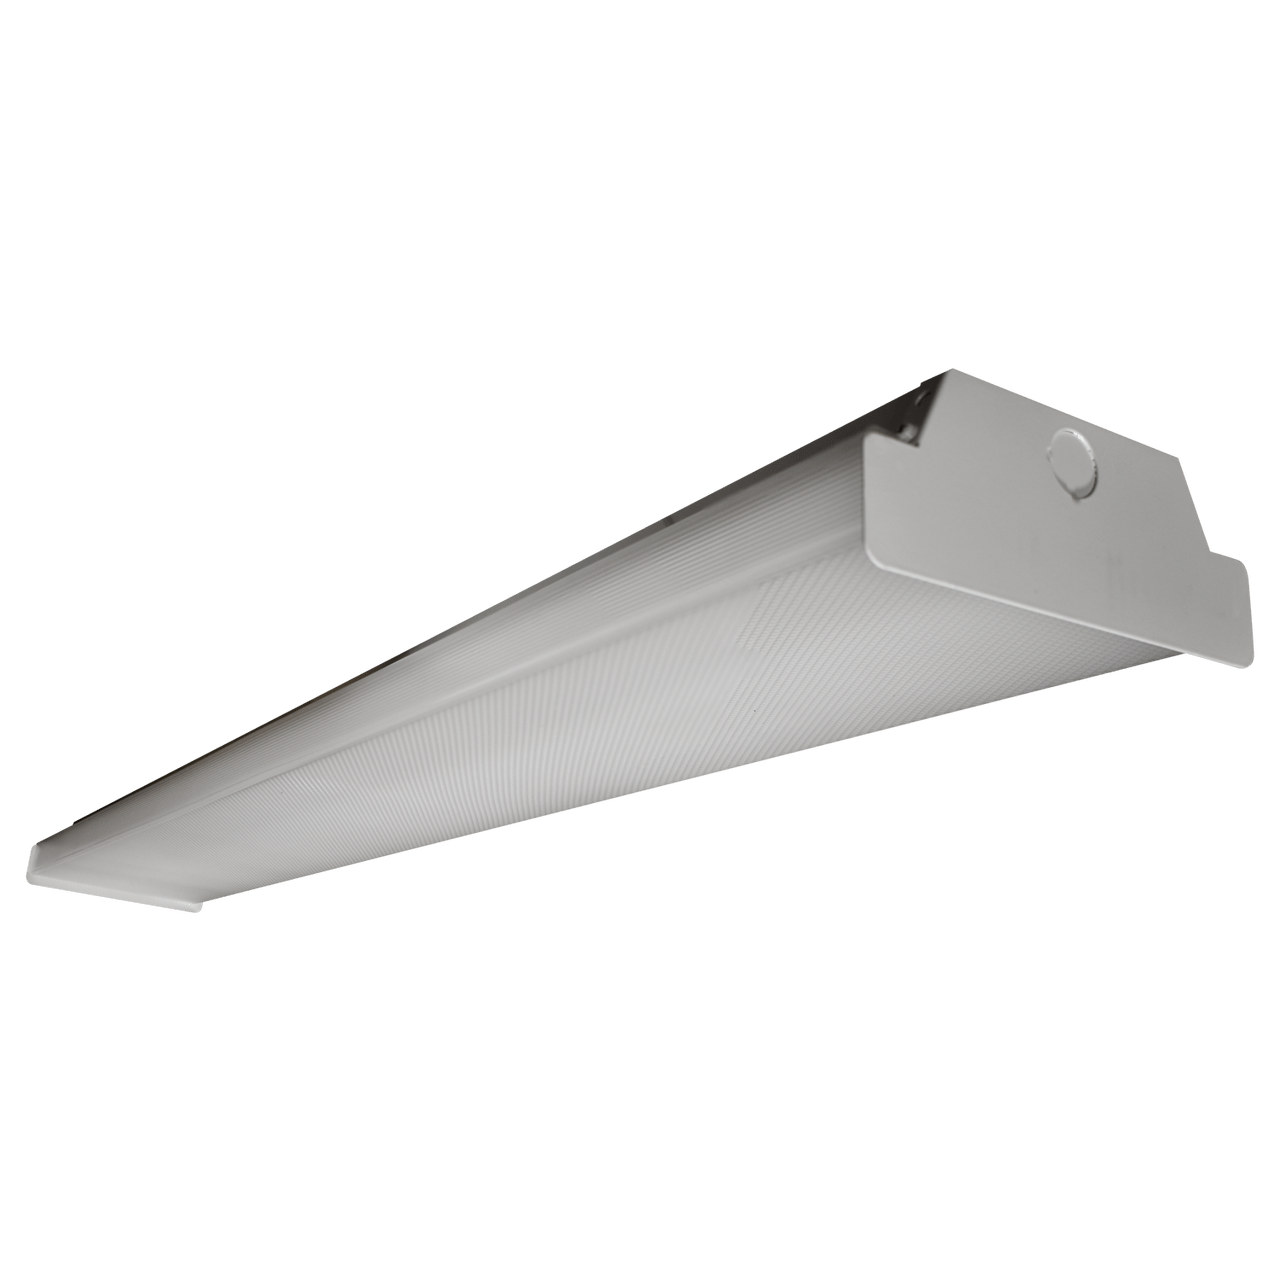 40 Watt In Lumen Led Wraparound 4ft 40 Watt 5240 Lumens 50k Dim 120v 277v Best Bwaled4ft 40 5kmv Et